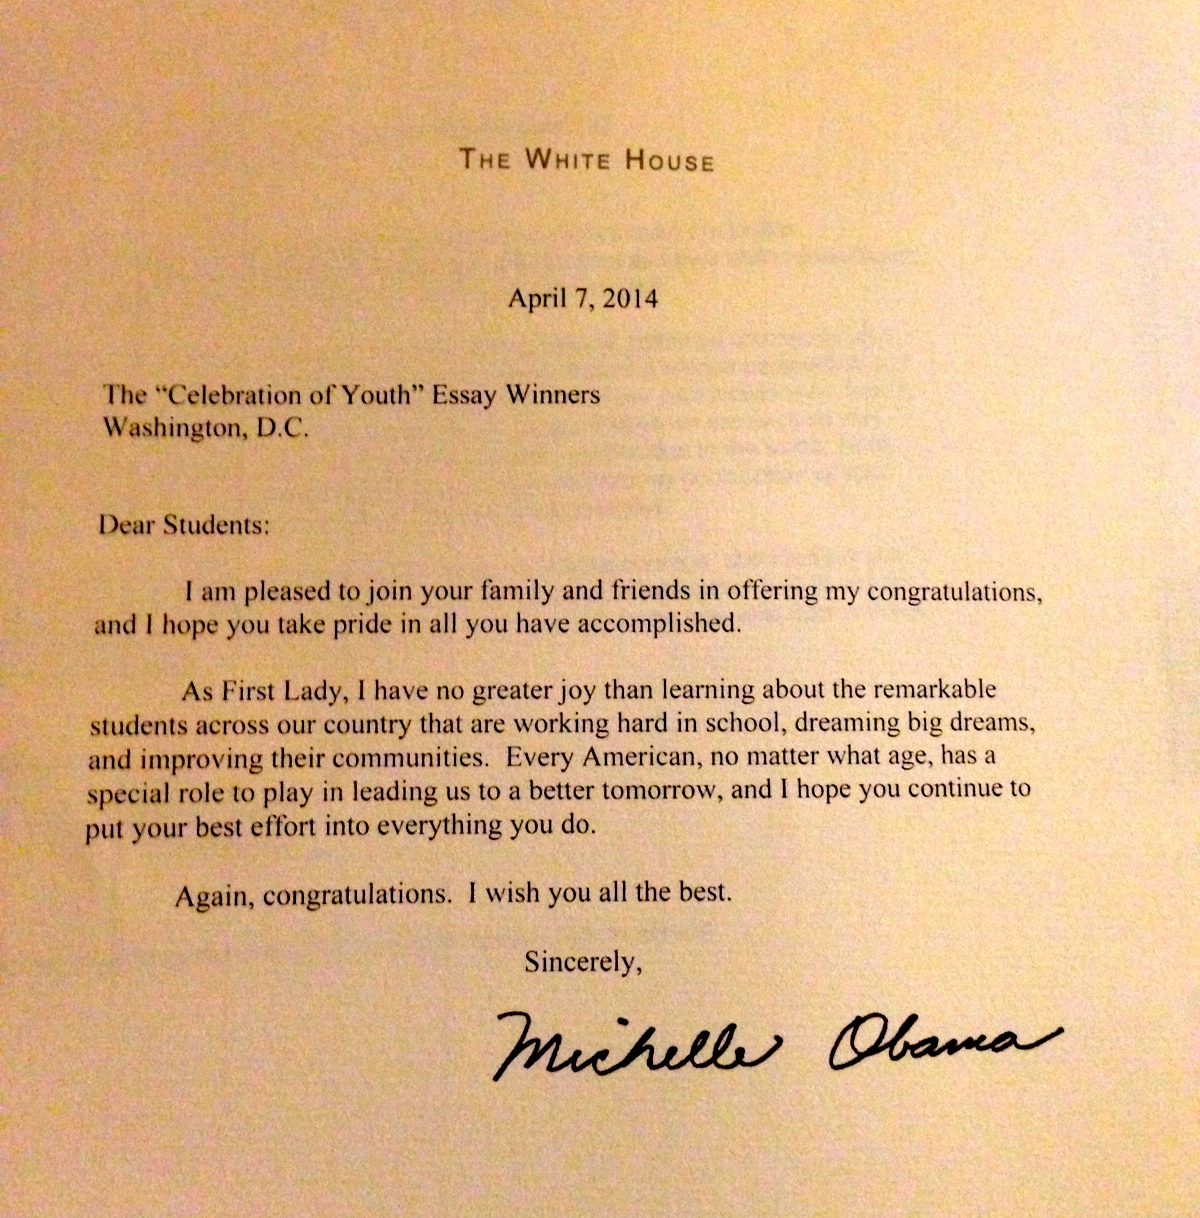 Congratulations from the First Lady!